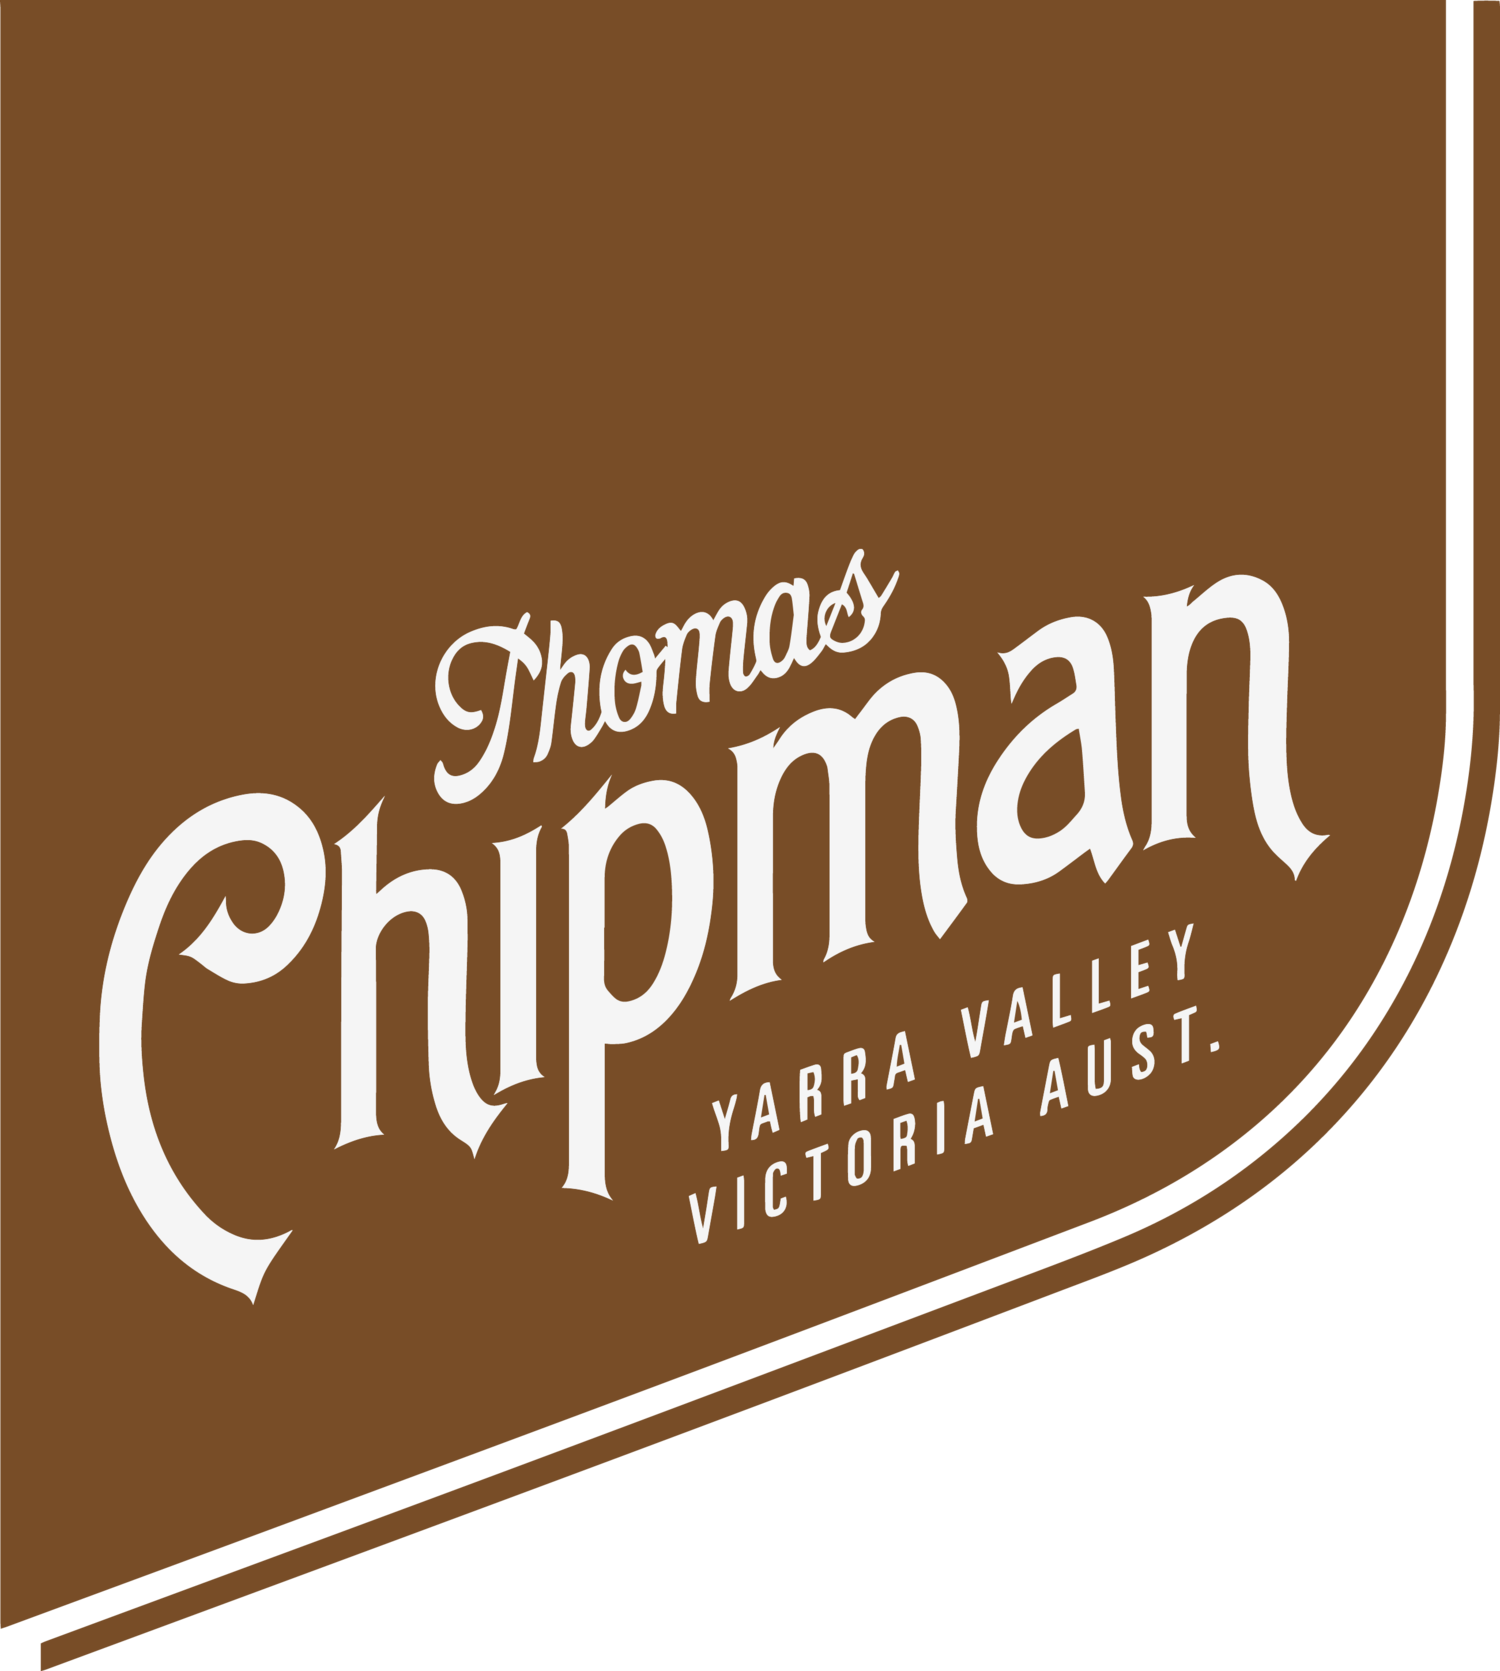 Thomas Chipman